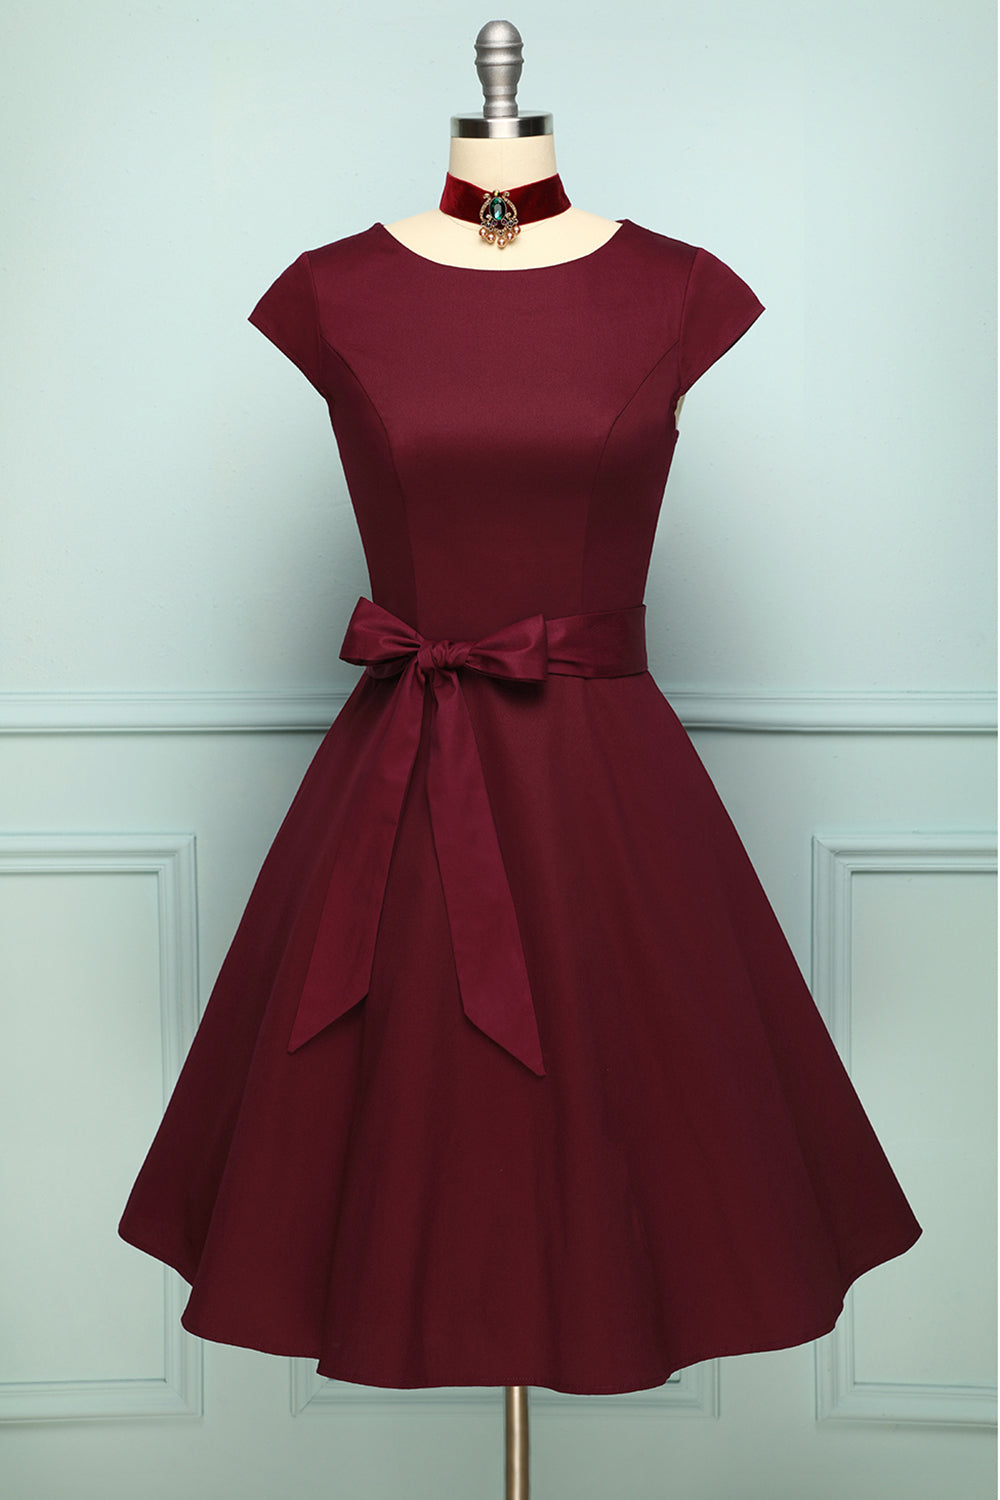 Burgundy A Line Vintage Boat Neck Swing Pinup Formal Party Dress with Sleeves